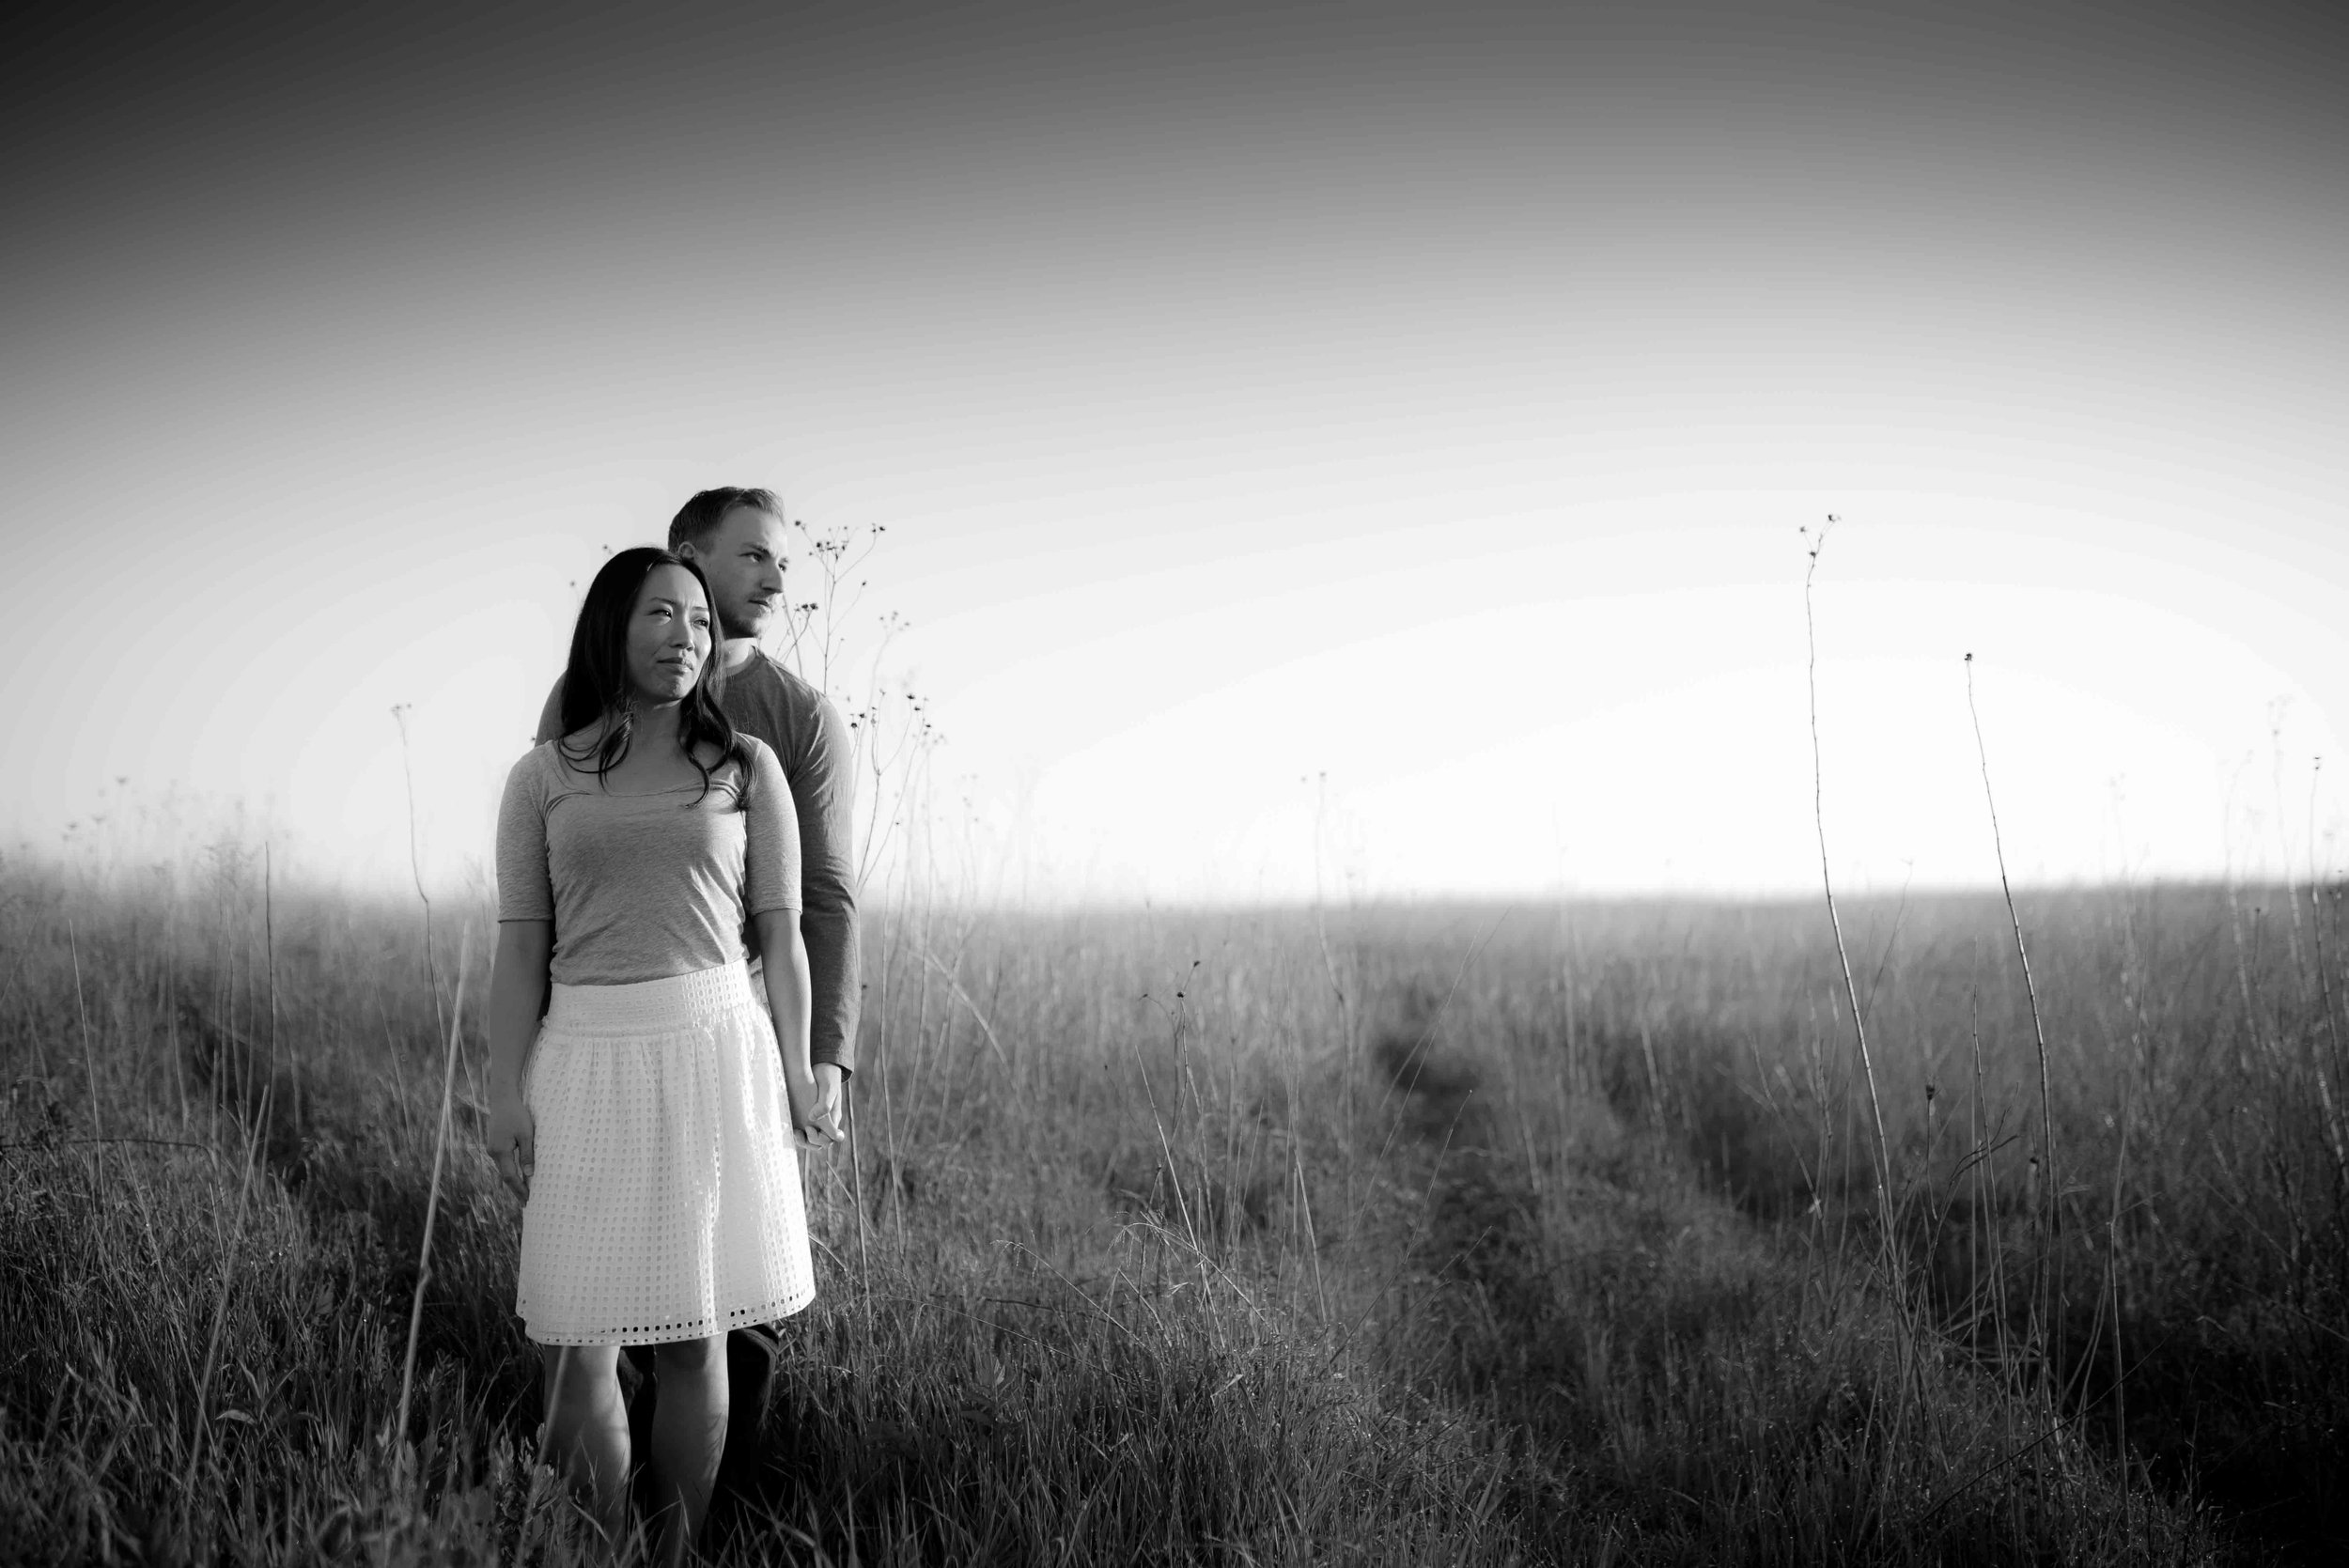 des-moines-engagement-photography-1.jpg